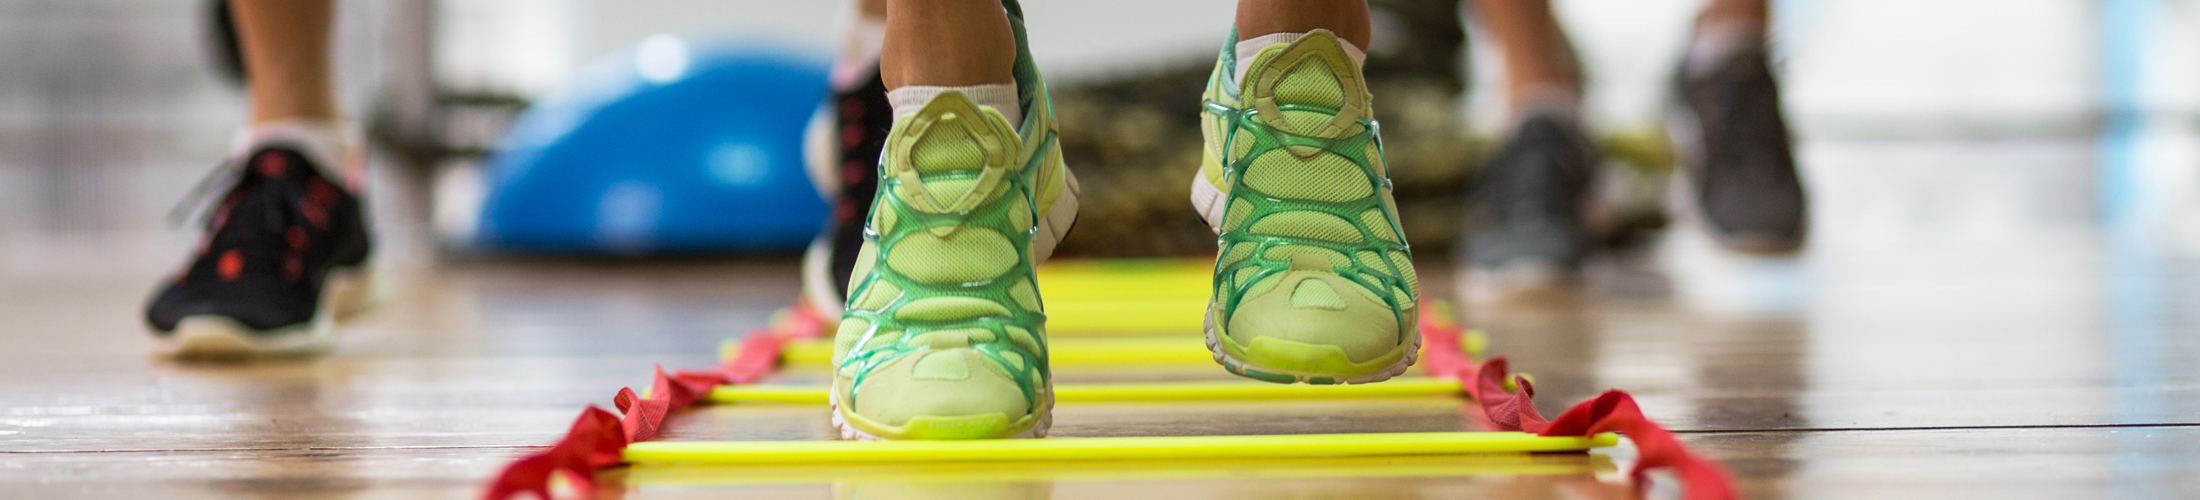 Tennis shoes running through a fitness ladder